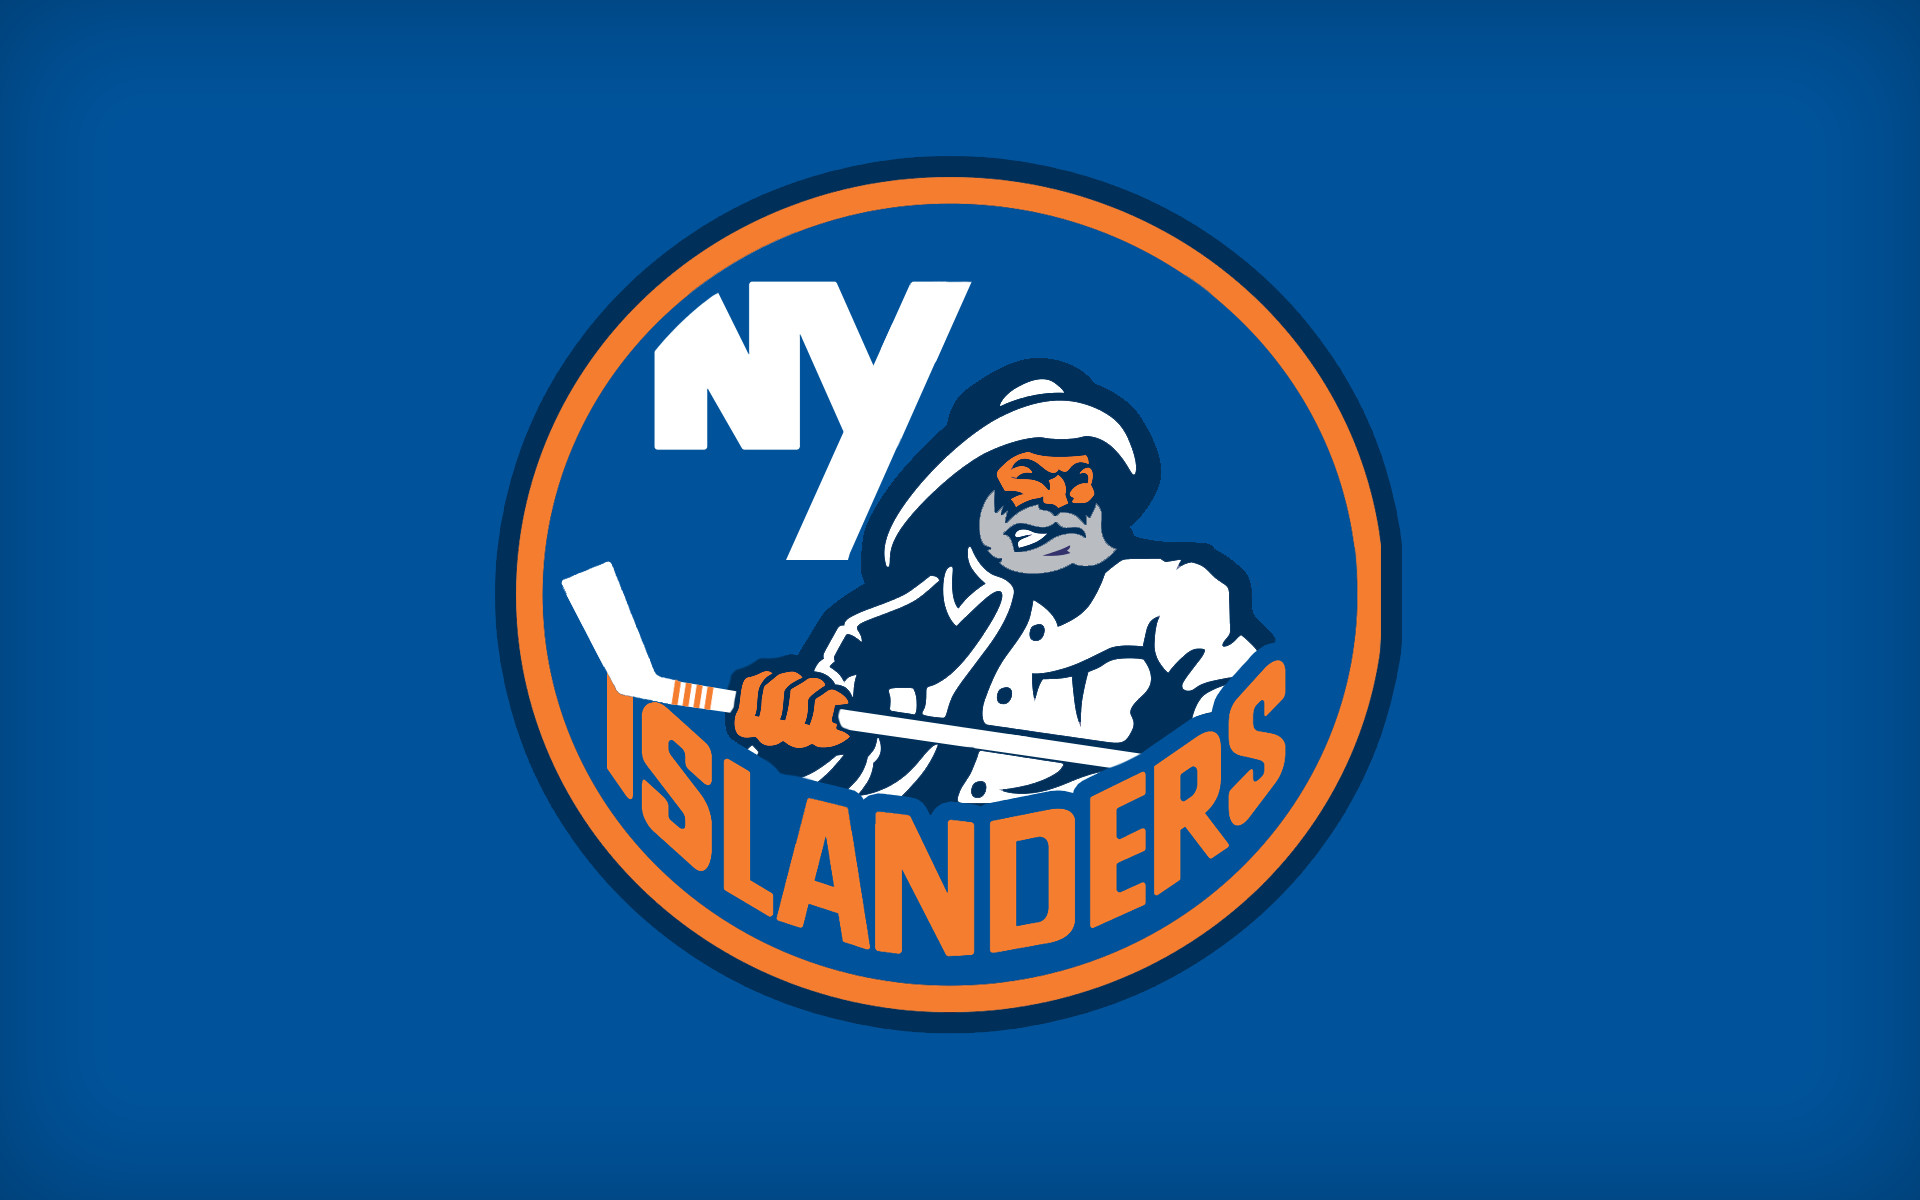 1920x1200 New York Islanders Wallpaper Wallpapersafari Source IPhone 65 Images